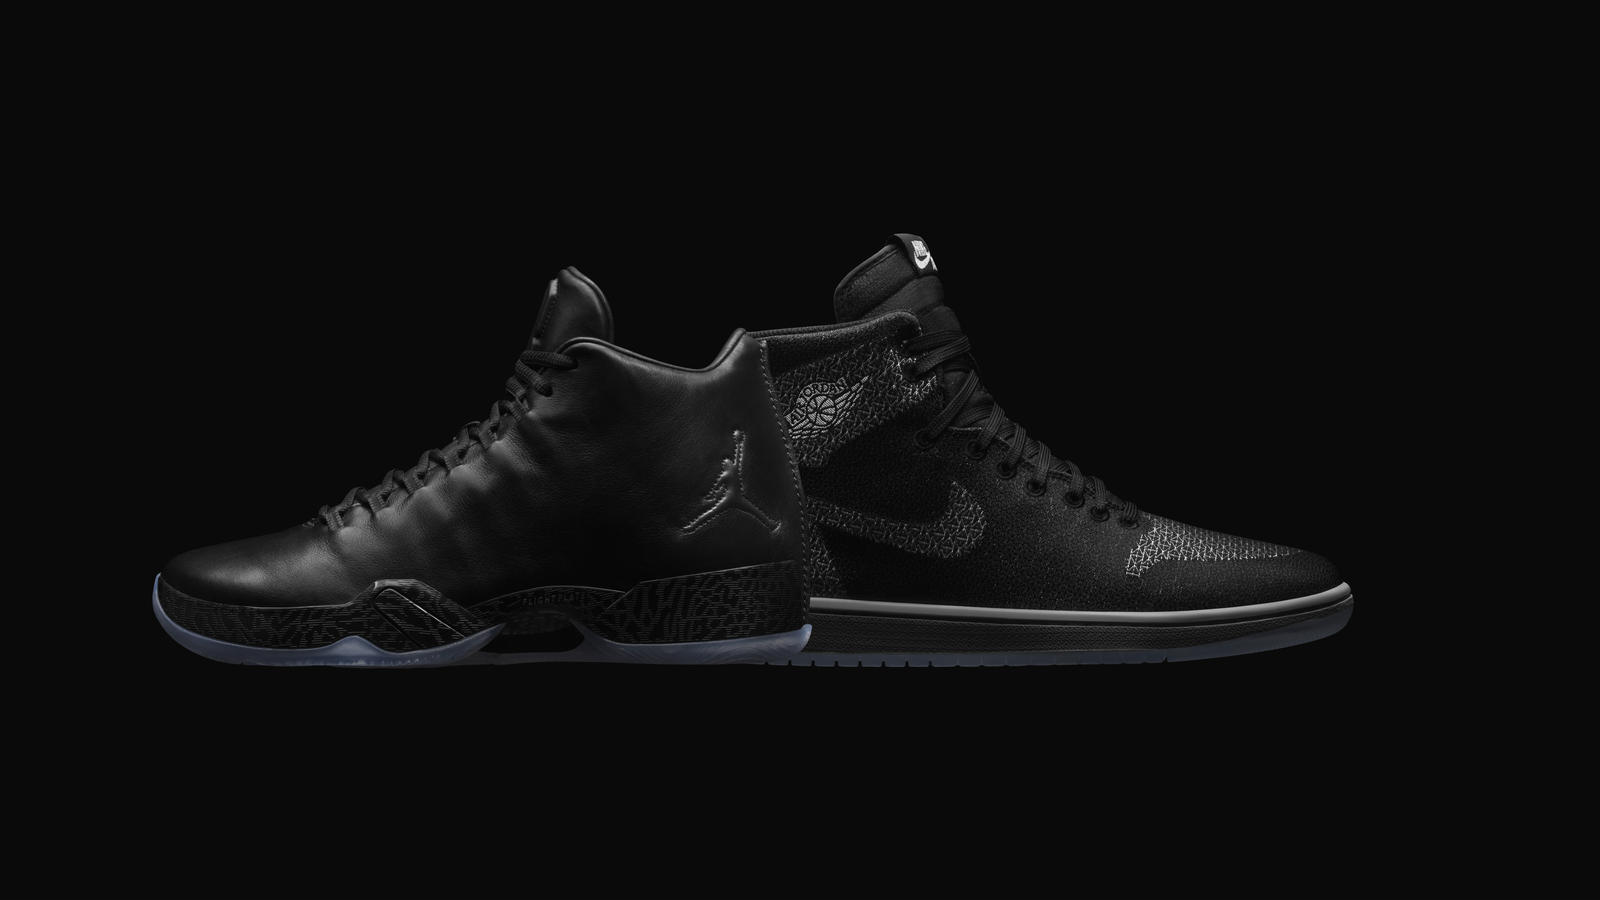 on sale d4f2a 515d3 The Ultimate Jordans  Presenting MTM - Nike News